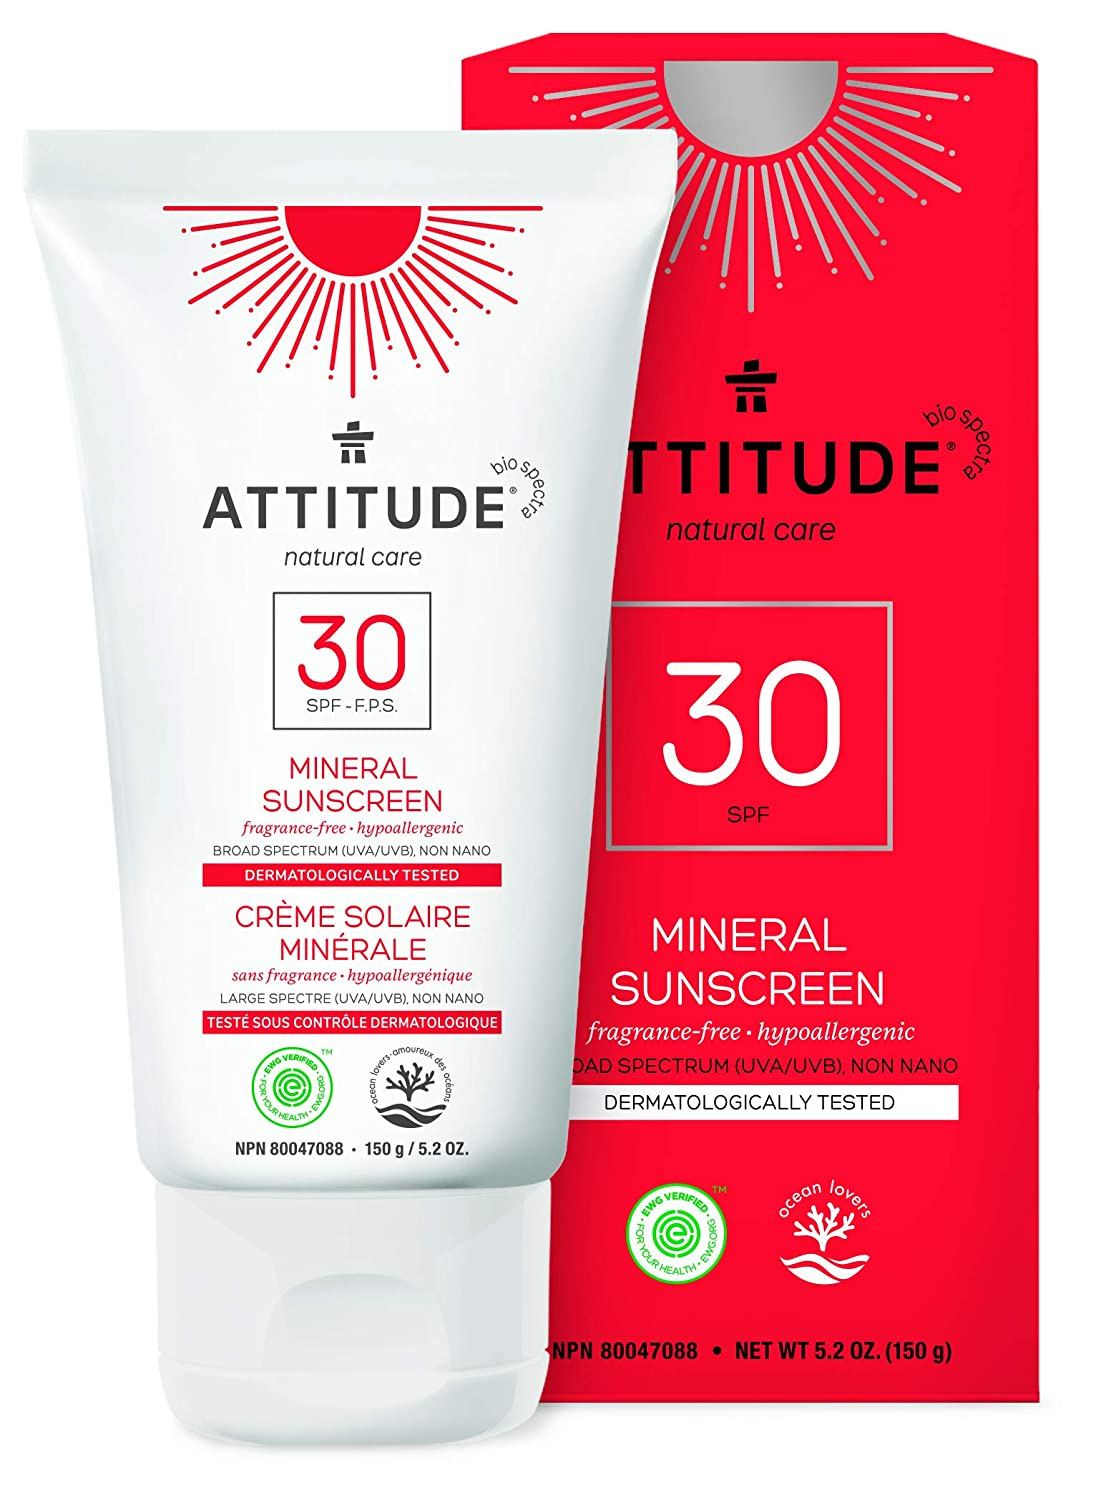 ATTITUDE Natural Care, Hypoallergenic Mineral Sunscreen, SPF 30, Fragrance Free, 5.2 oz